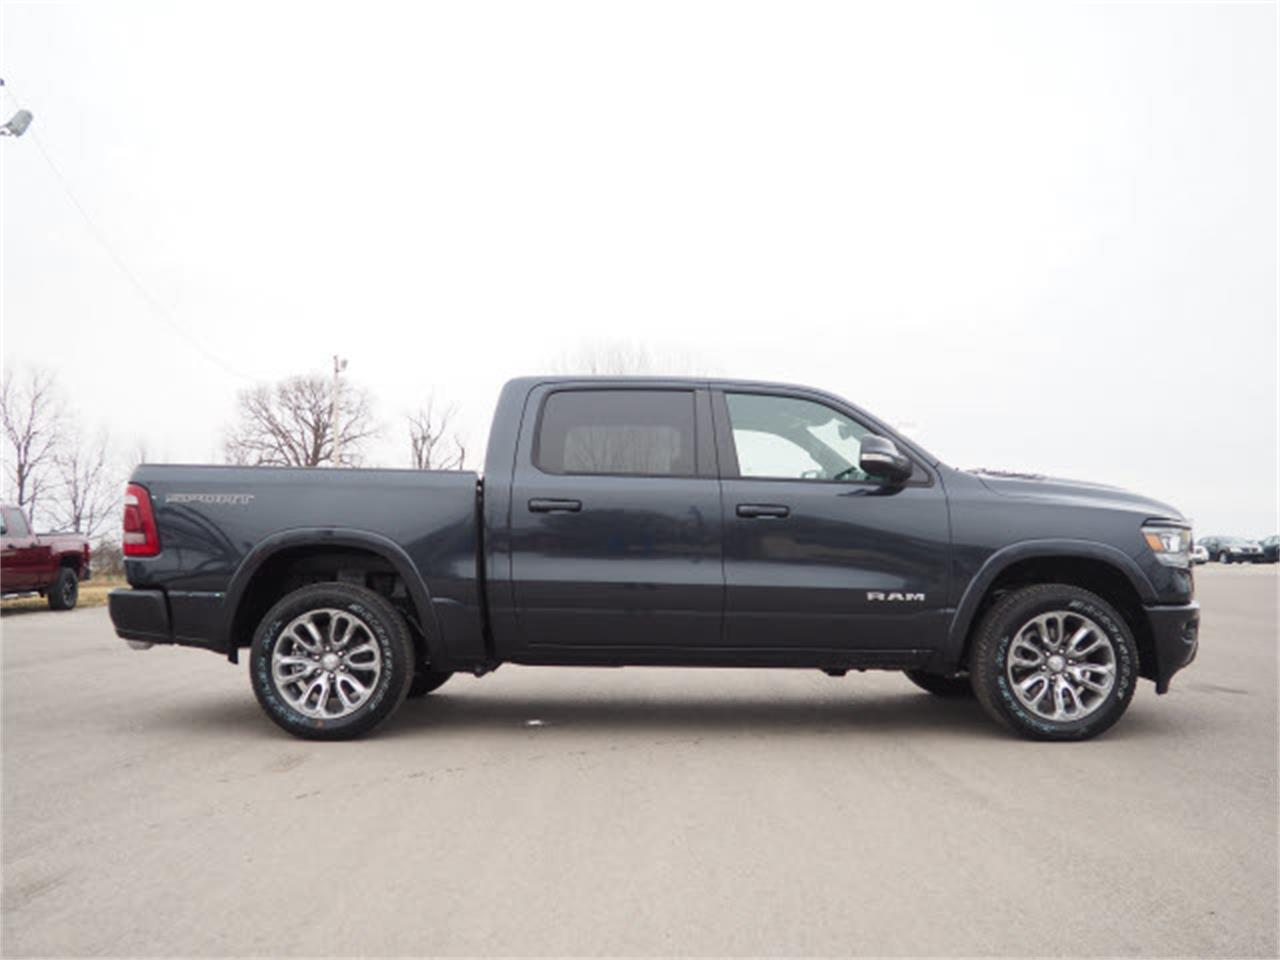 2020 Dodge Ram 1500 (CC-1327585) for sale in Marysville, Ohio